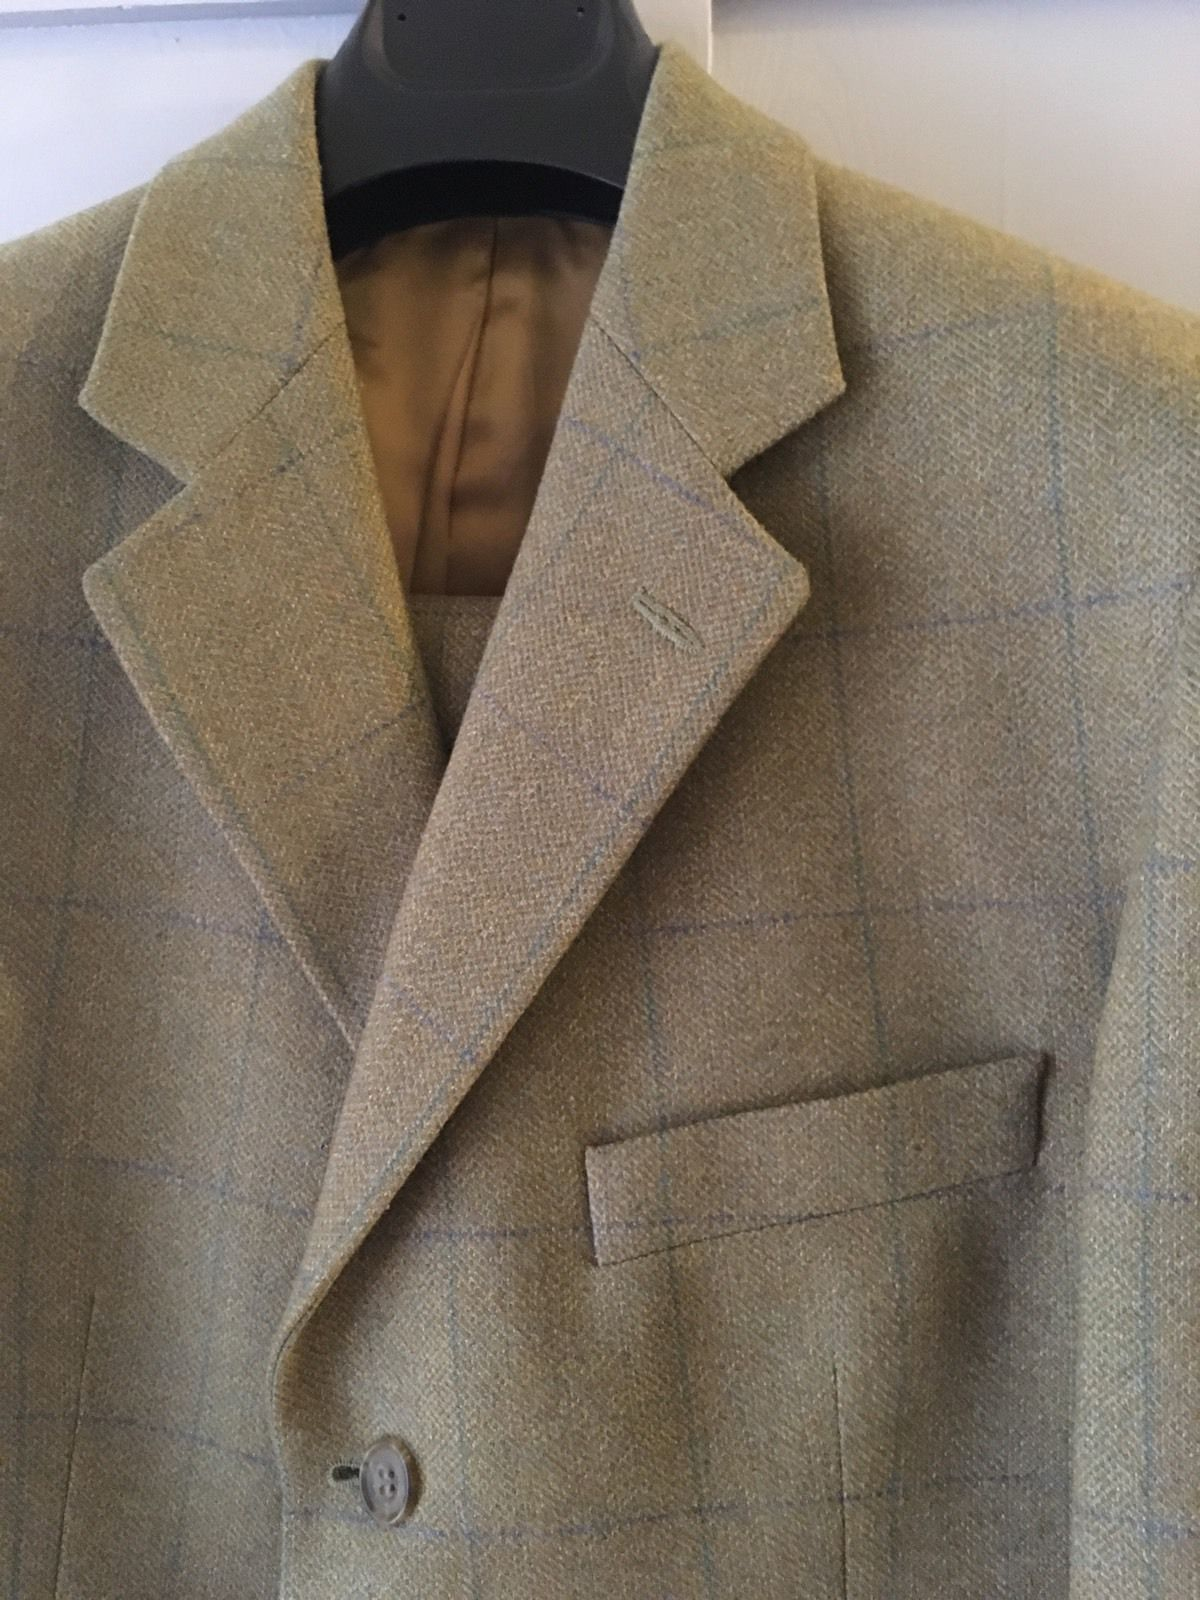 Cordings Tweed Suit - Excellent Condition | eBay